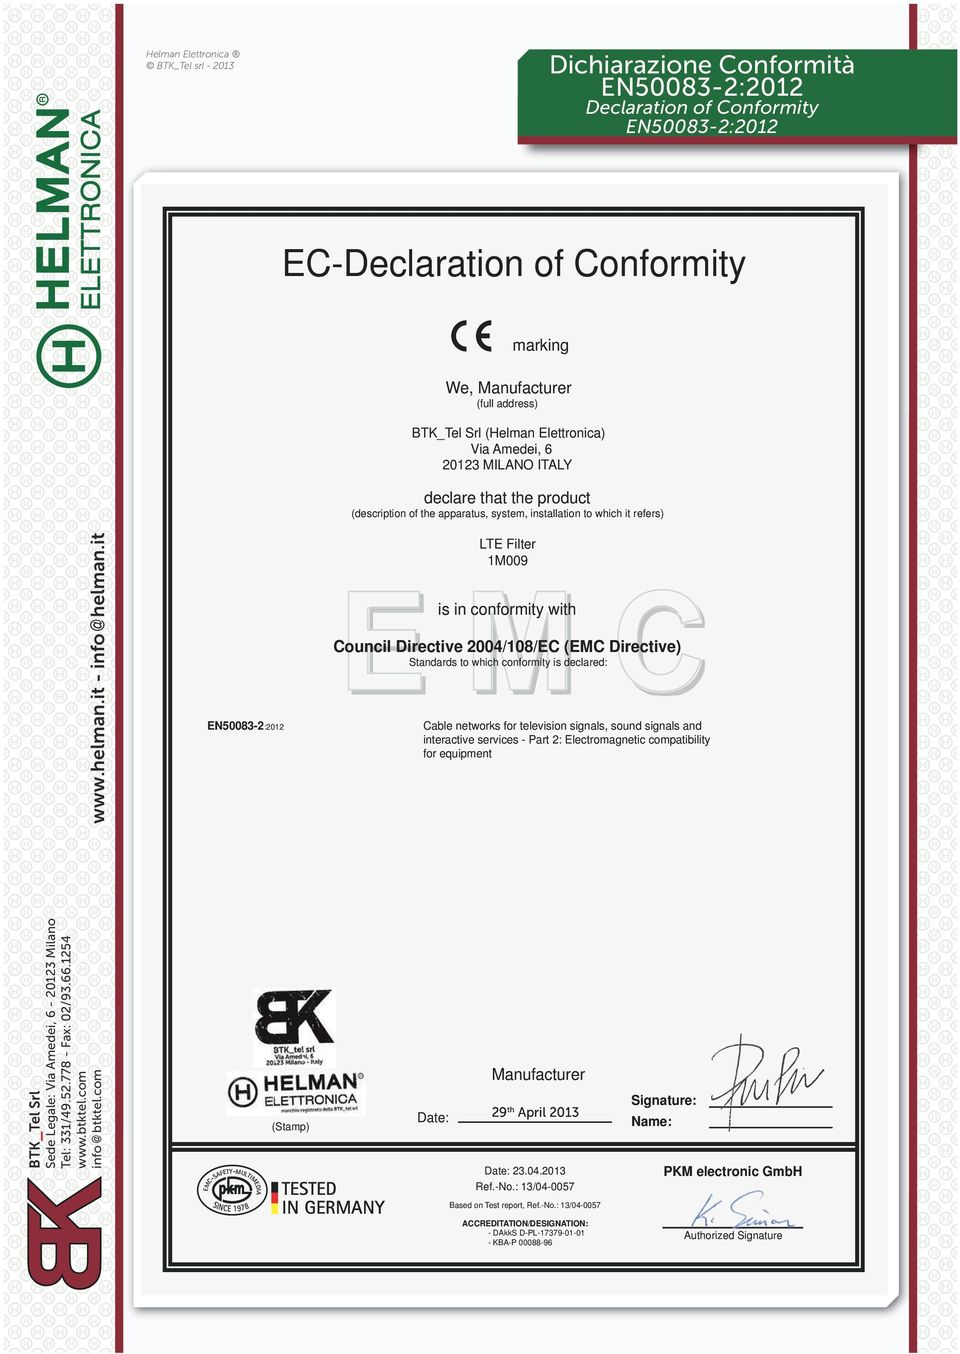 ILANO ITAL declare that the product BT _Tel Srl E is in conformity with ouncil Directive //E (E Directive) Standards to which conformity is declared: EN-: able networks for television signals, sound